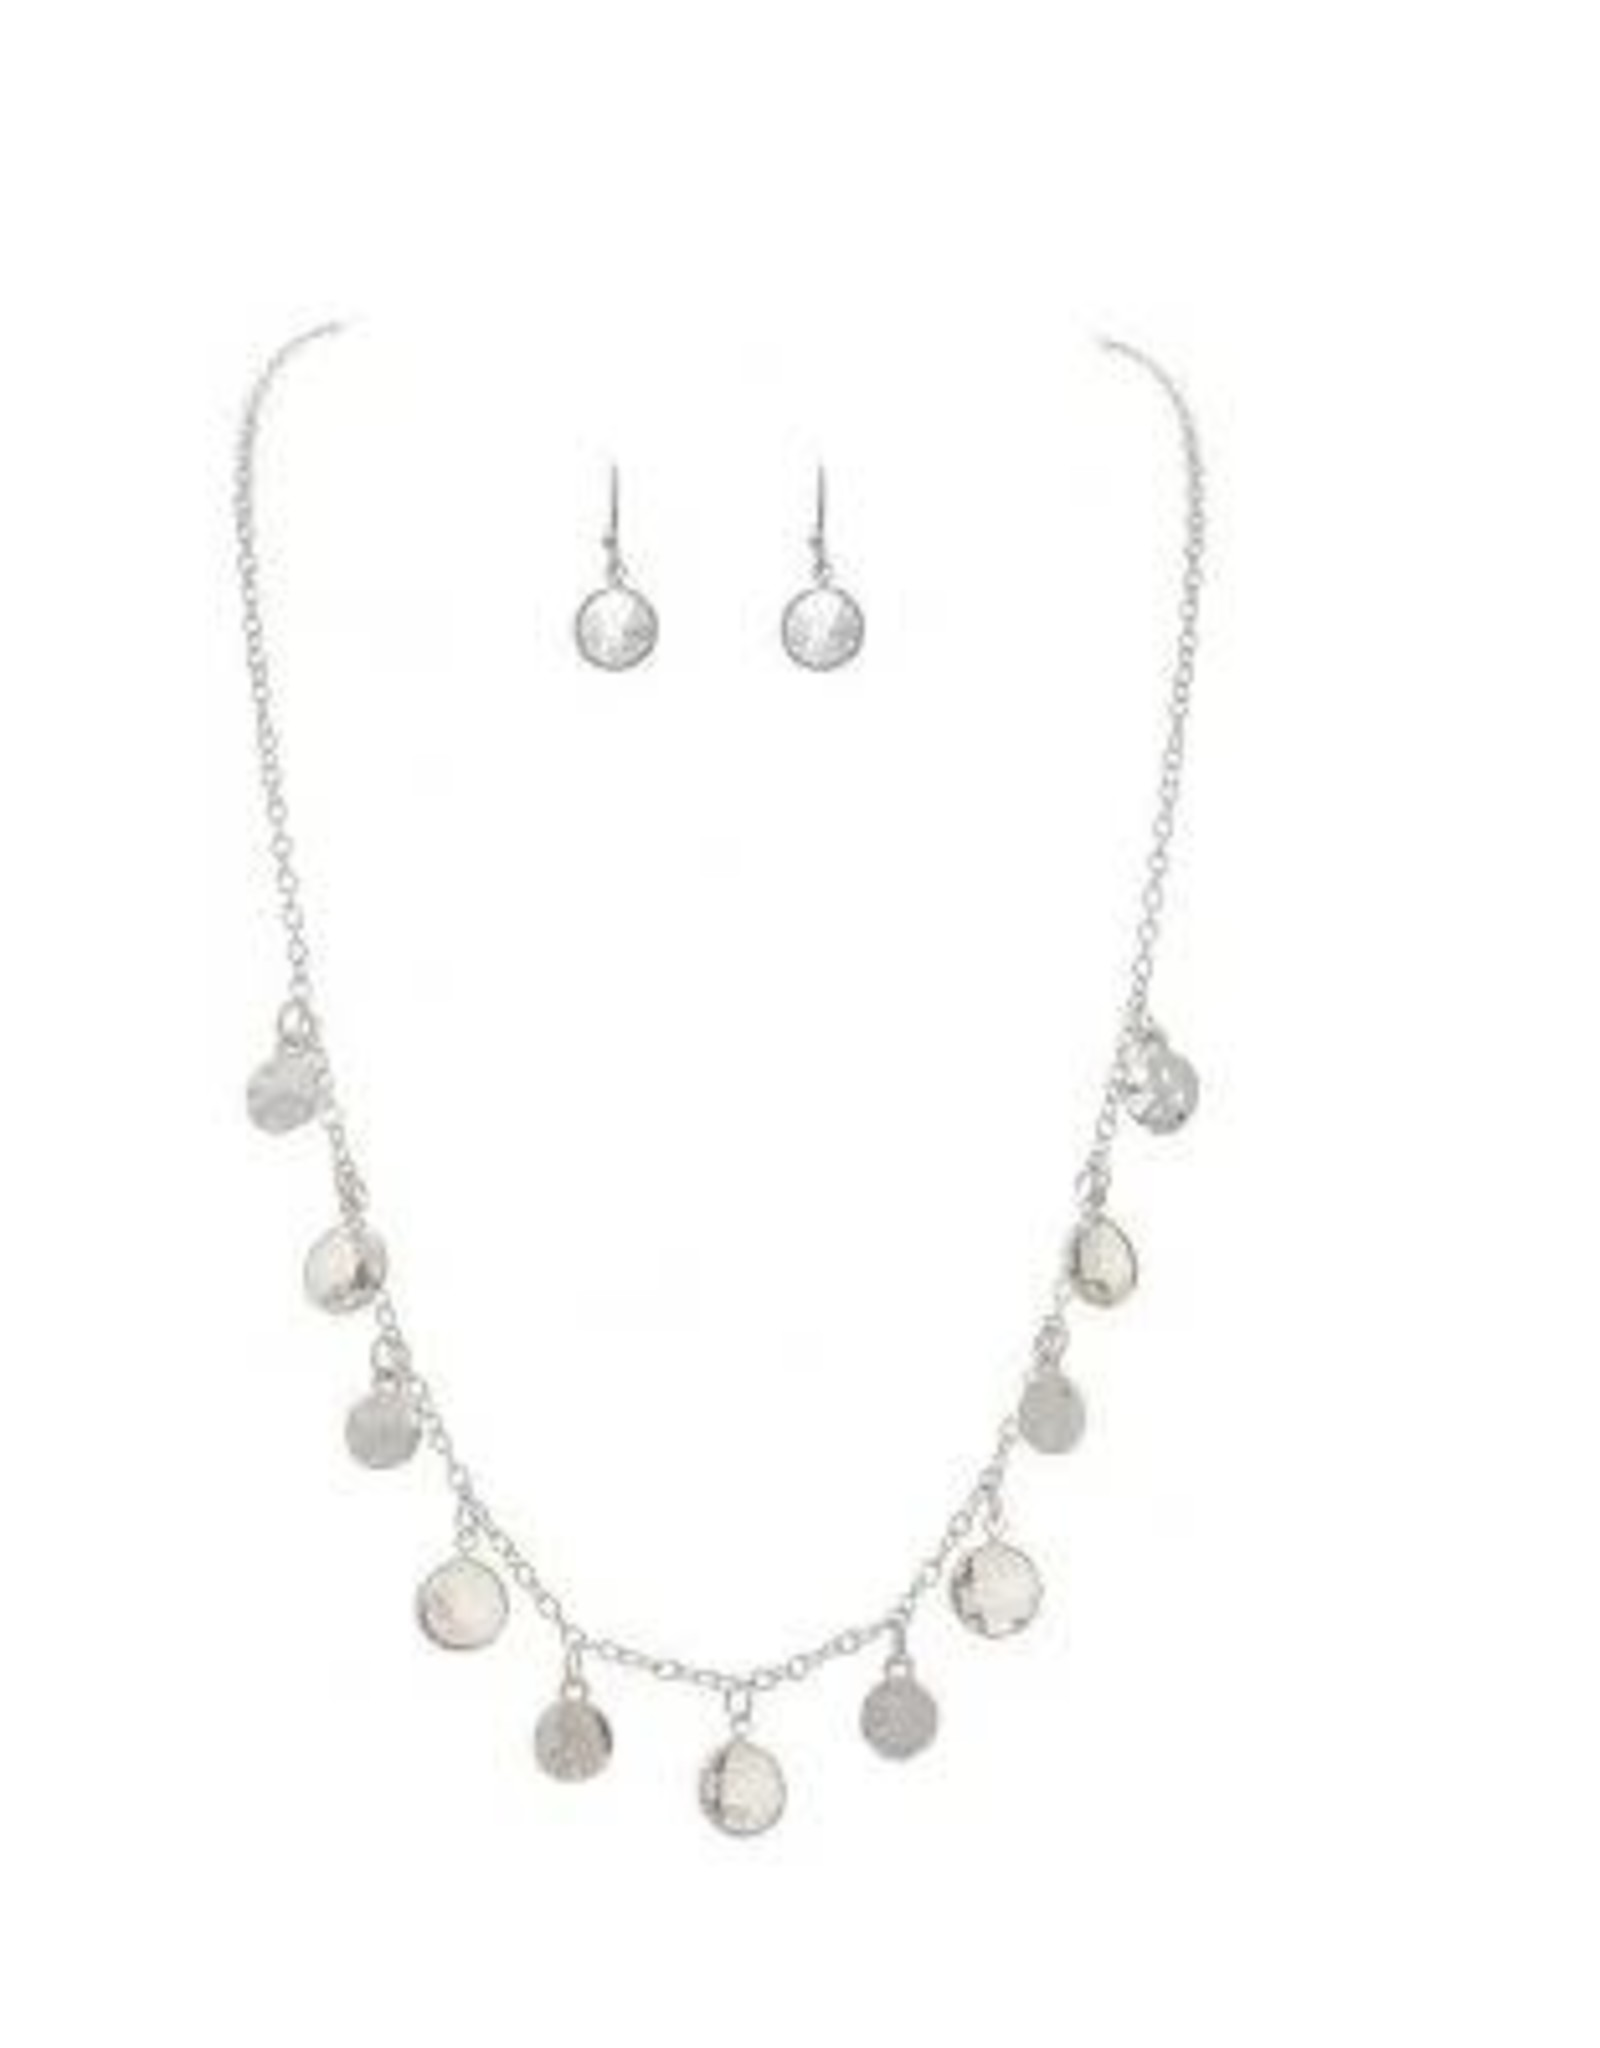 SILVER DISCS AND CRYSTAL DROPS NECKLACE SET